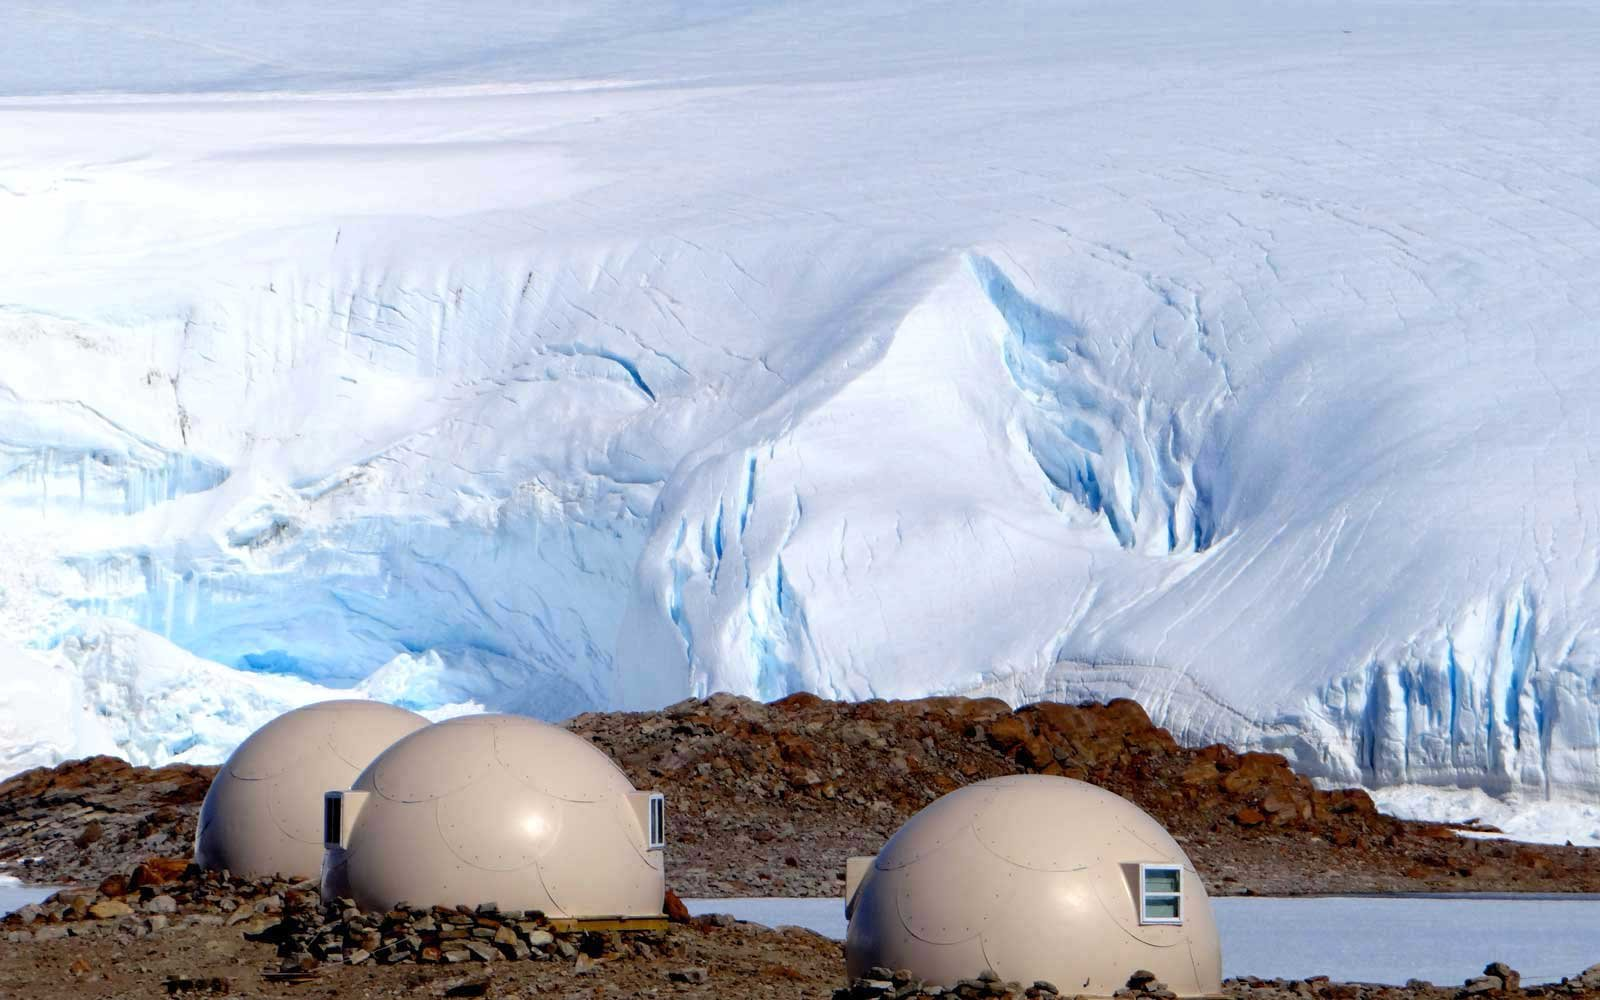 Sleeping pods at White Desert, in Antarctica